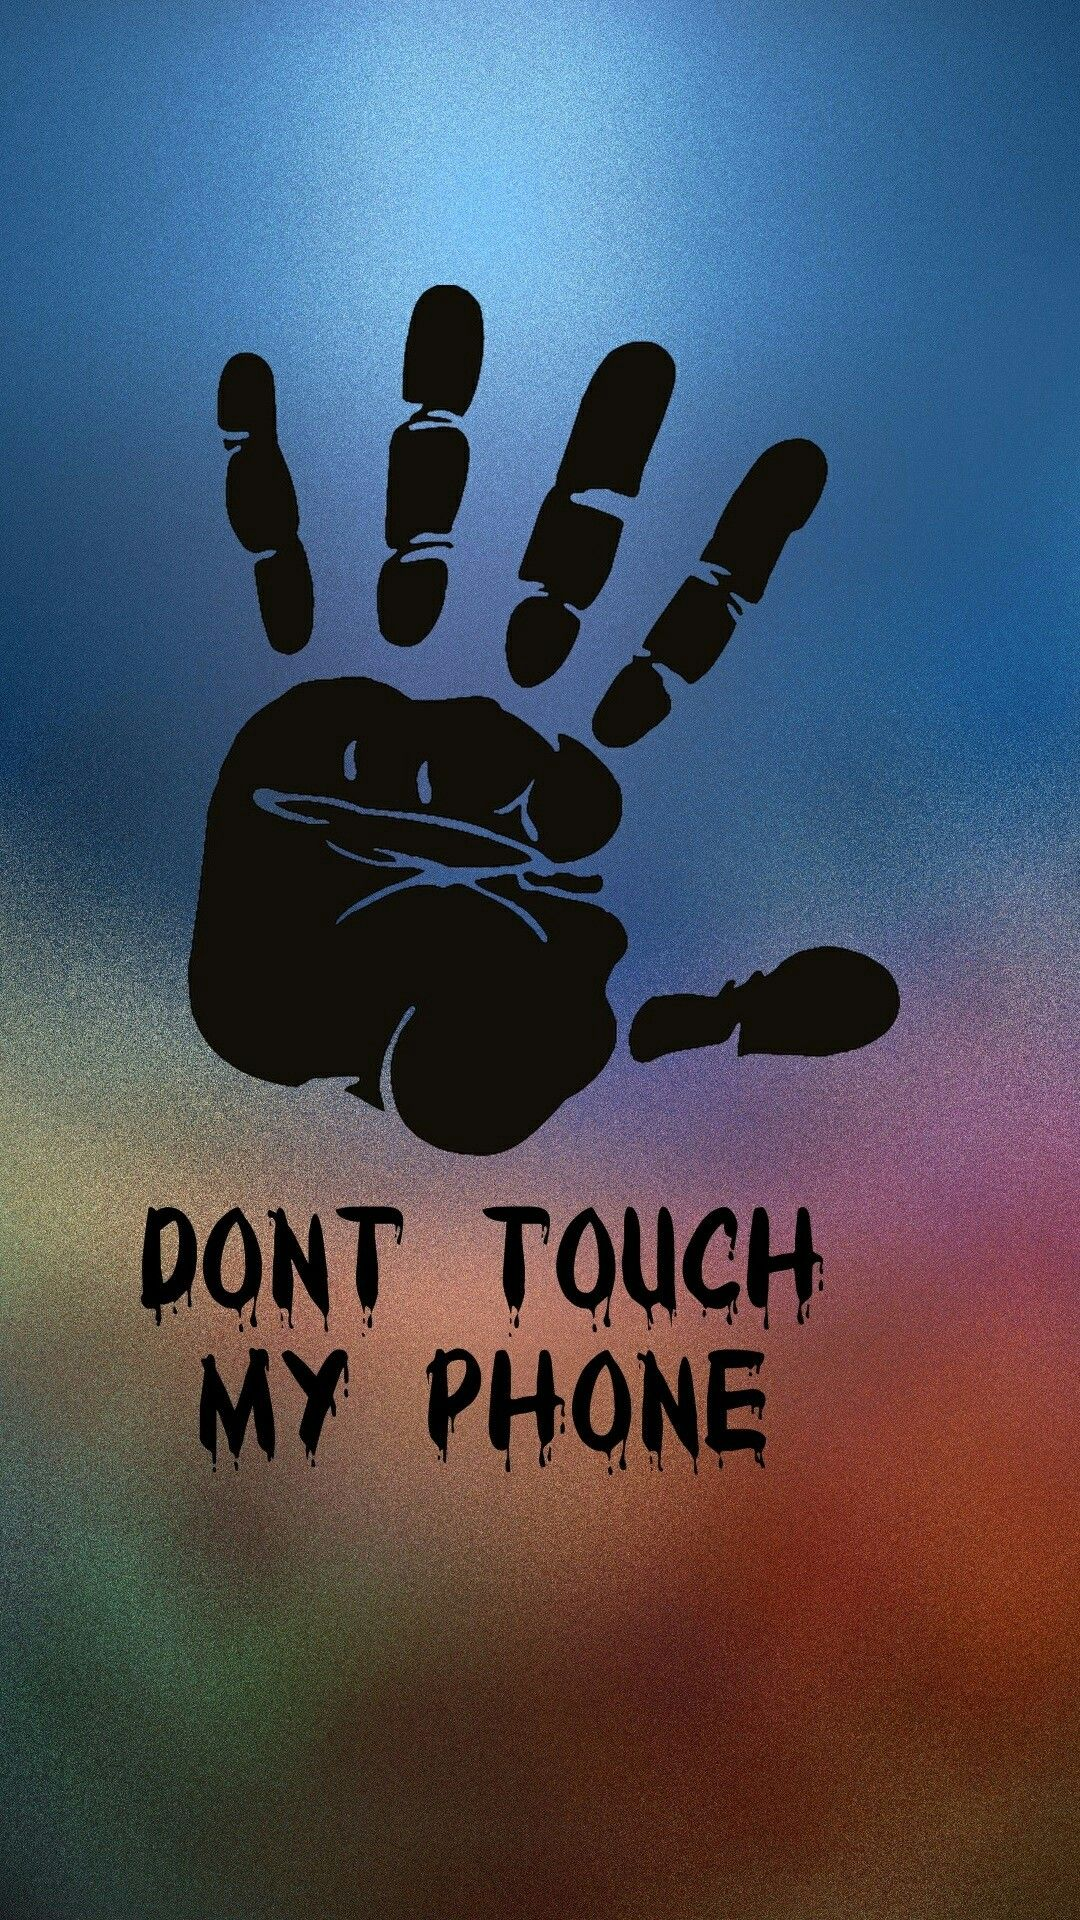 Don T Touch My Phone Dont Touch My Phone Wallpapers Locked Wallpaper Funny Iphone Wallpaper